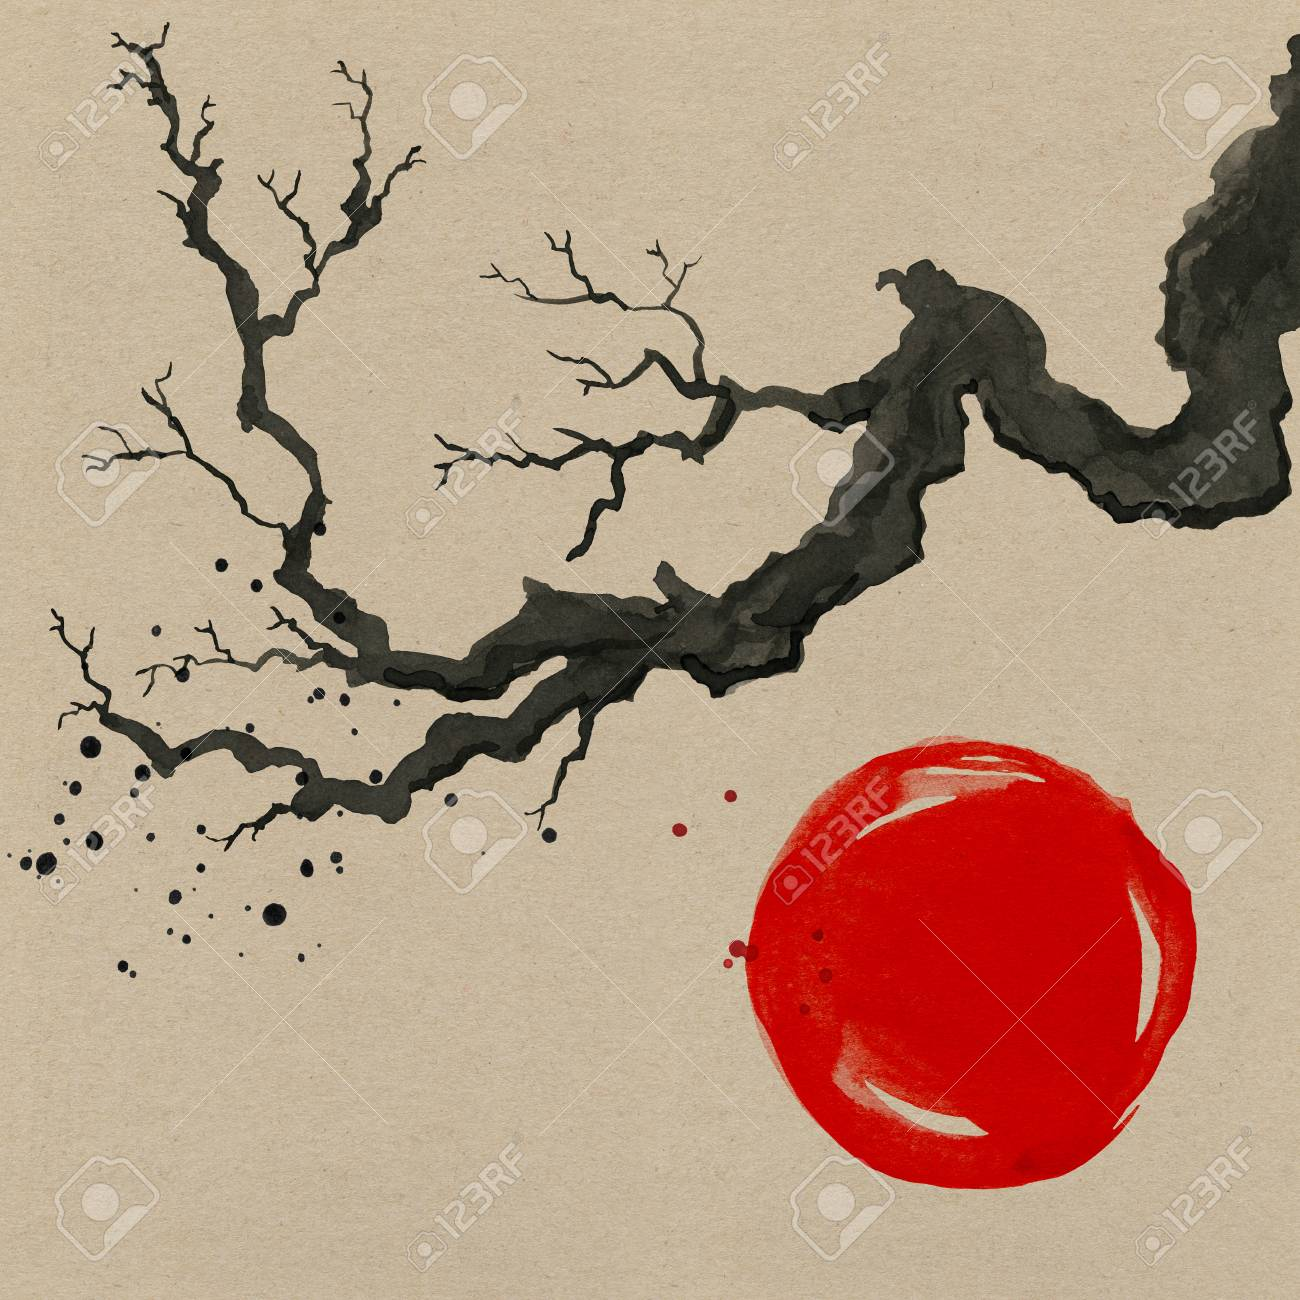 Tree Branch In Japanese Style Watercolor Hand Painting Illustration Stock Photo Picture And Royalty Free Image Image 105343121